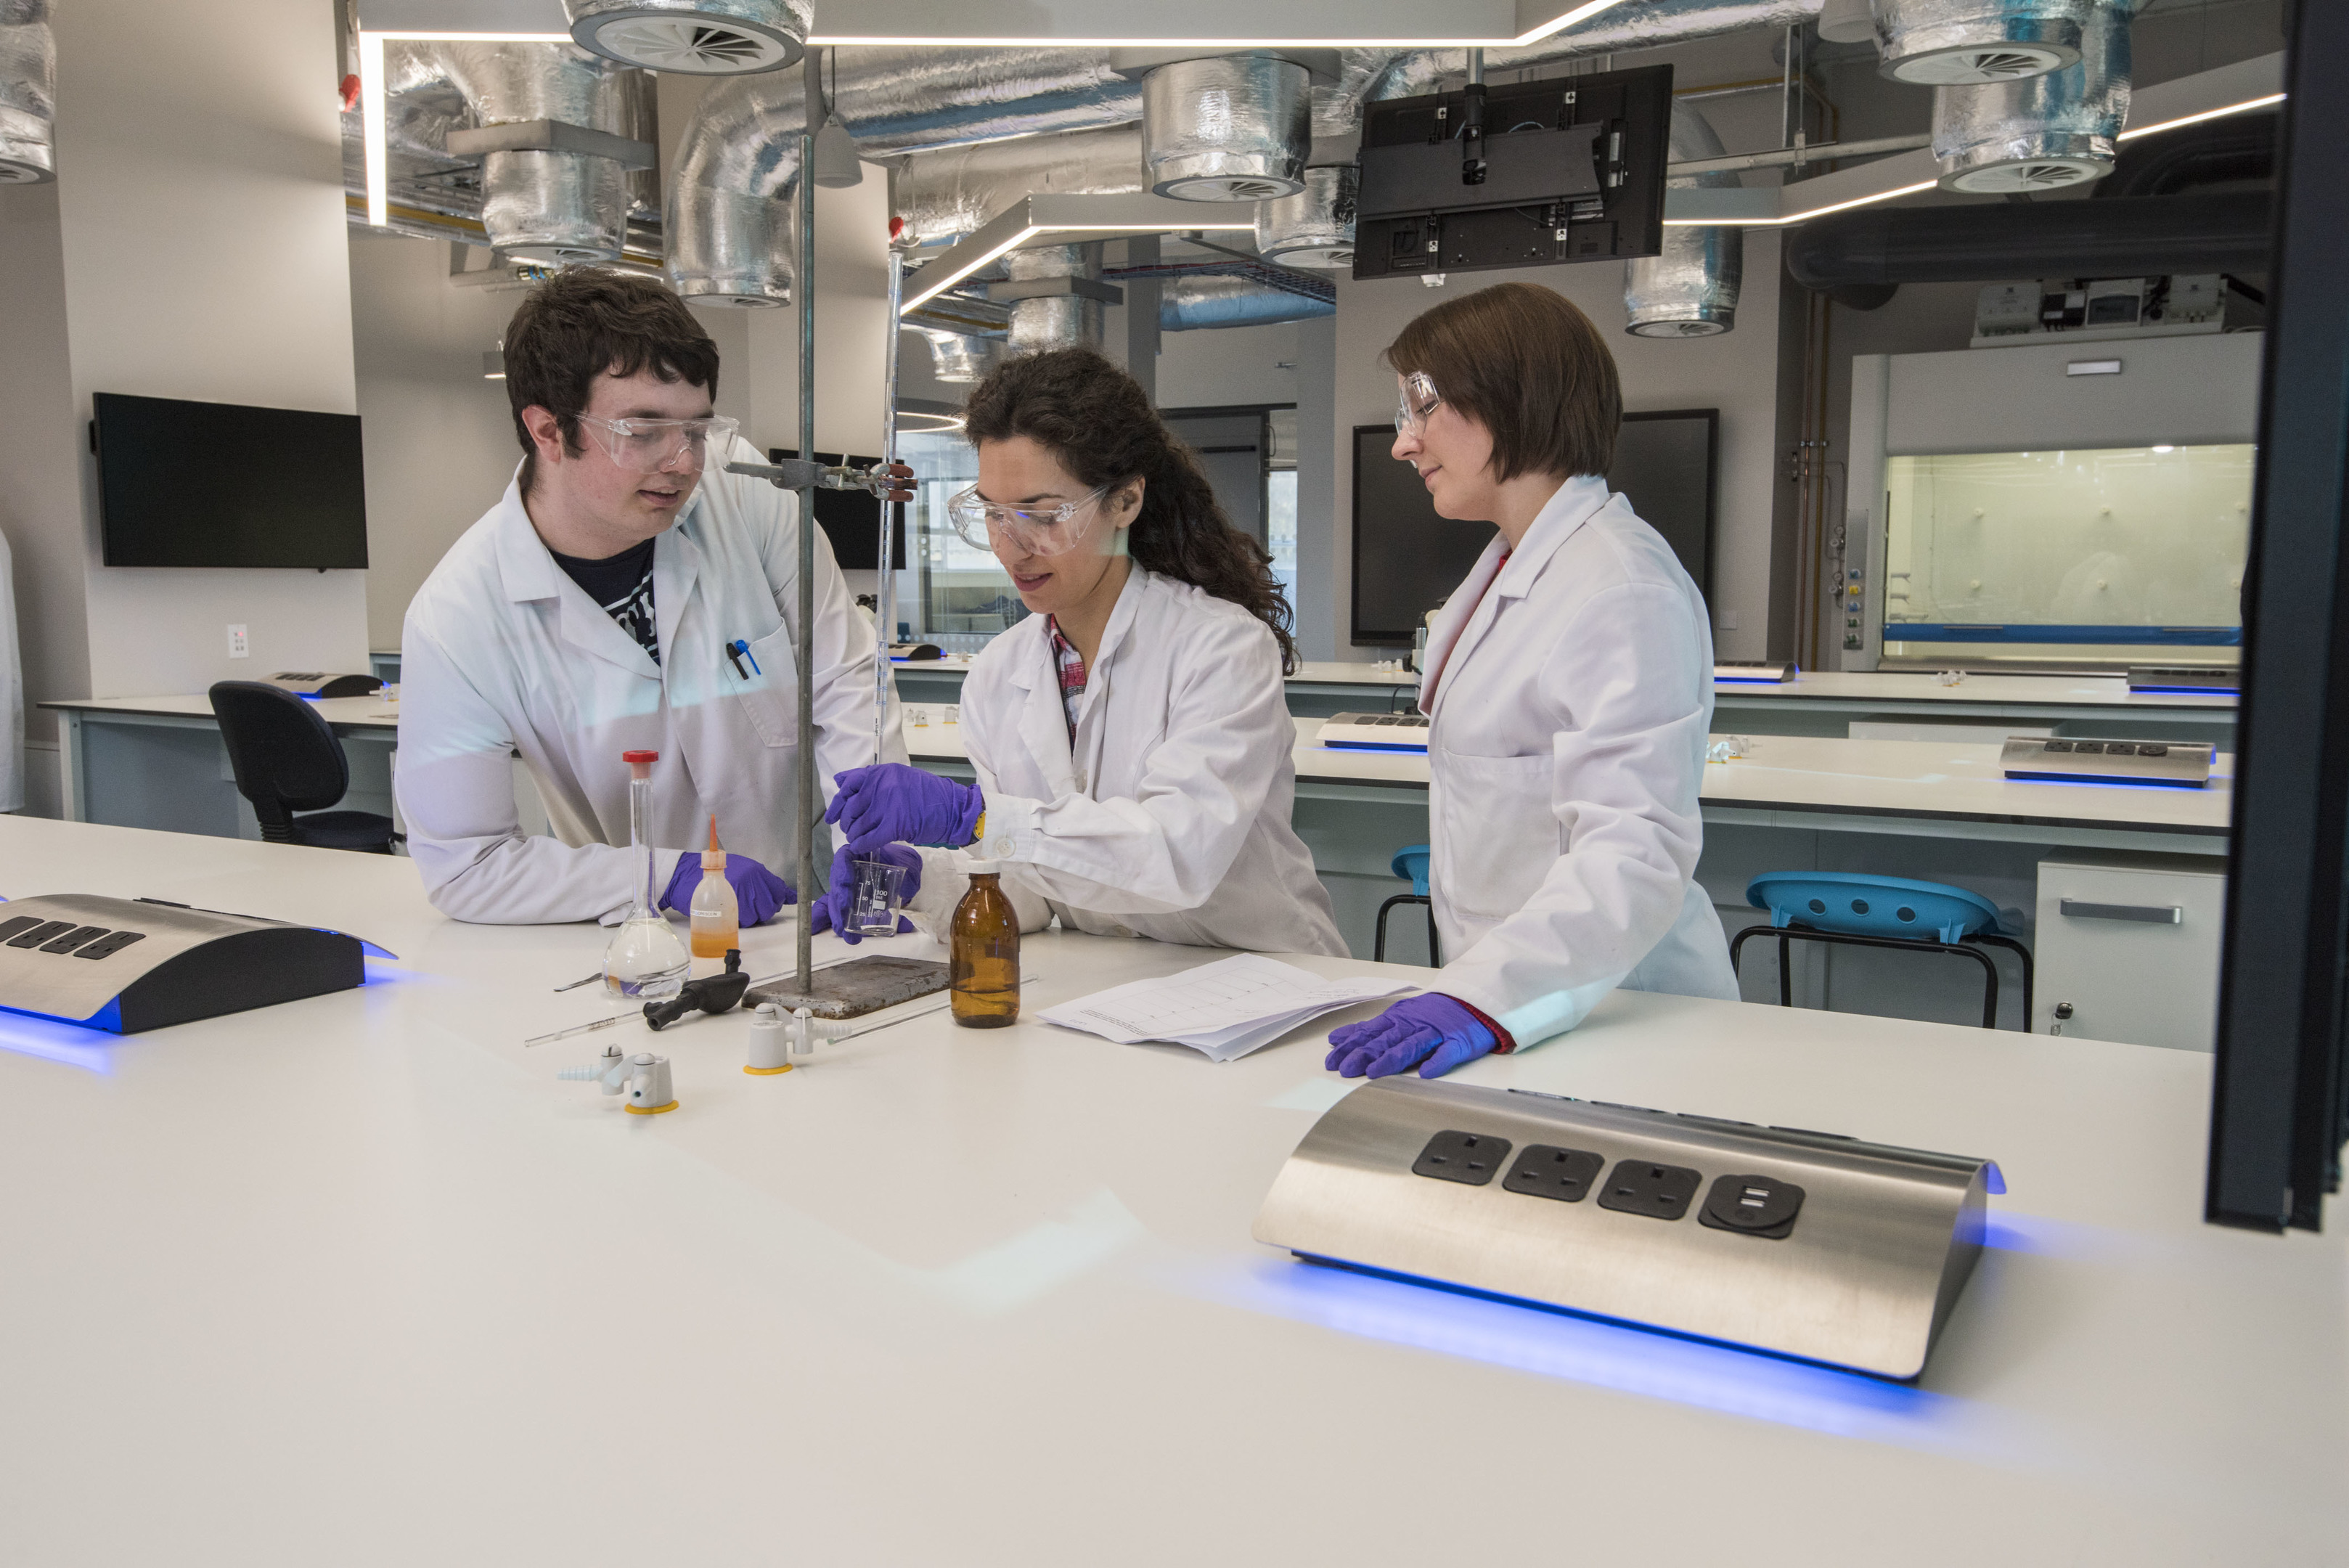 Abertay's new state-of-the-art lab space.